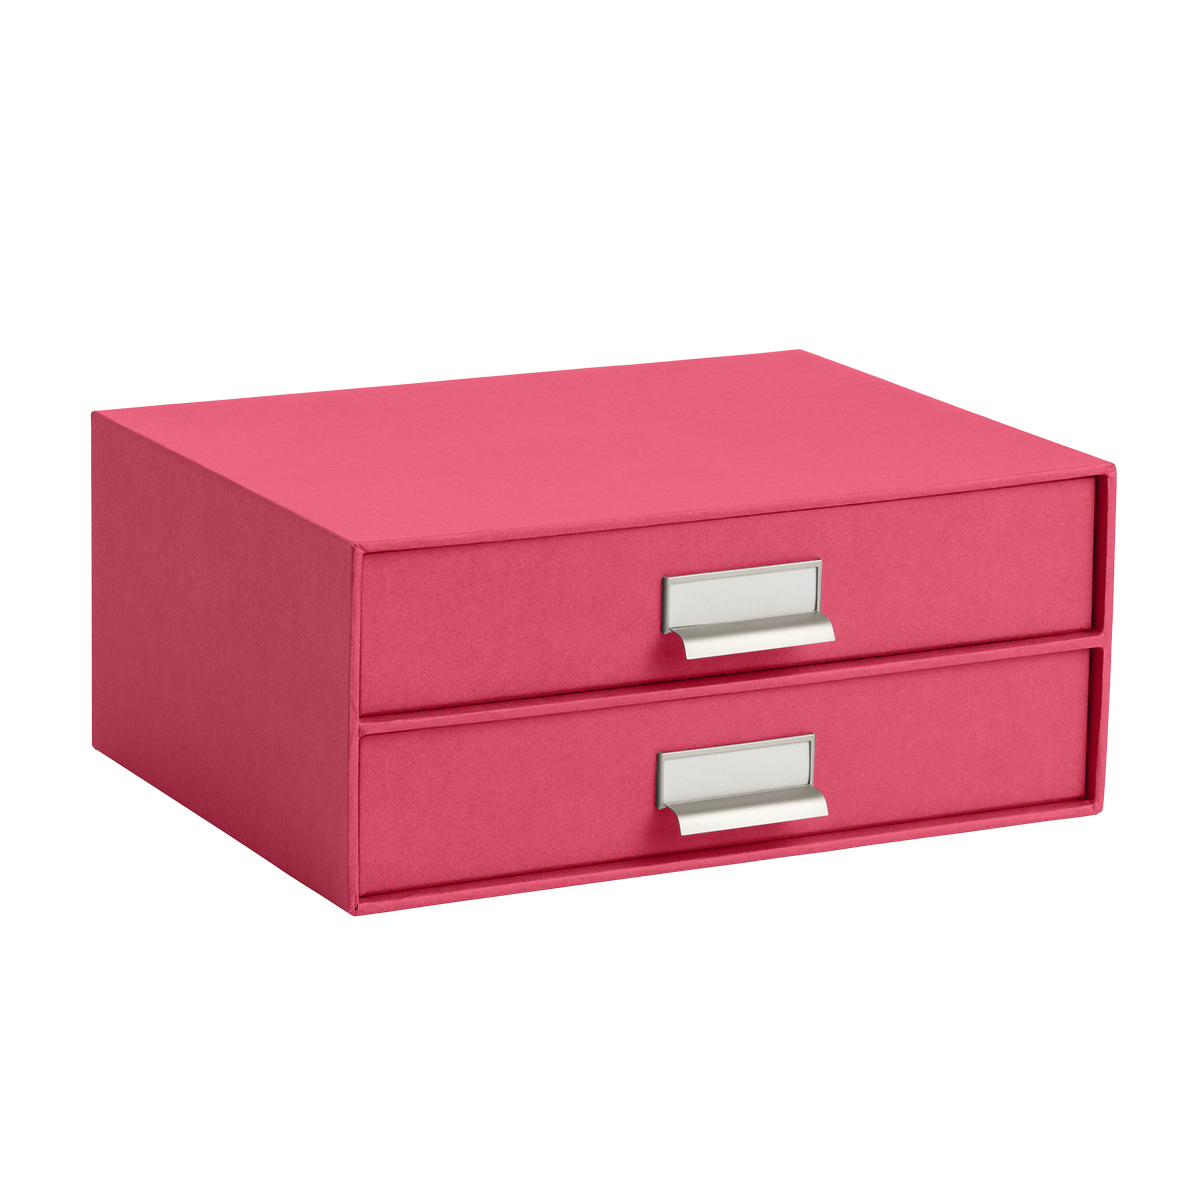 Bigso Pink Stockholm Paper Drawers | The Container Store